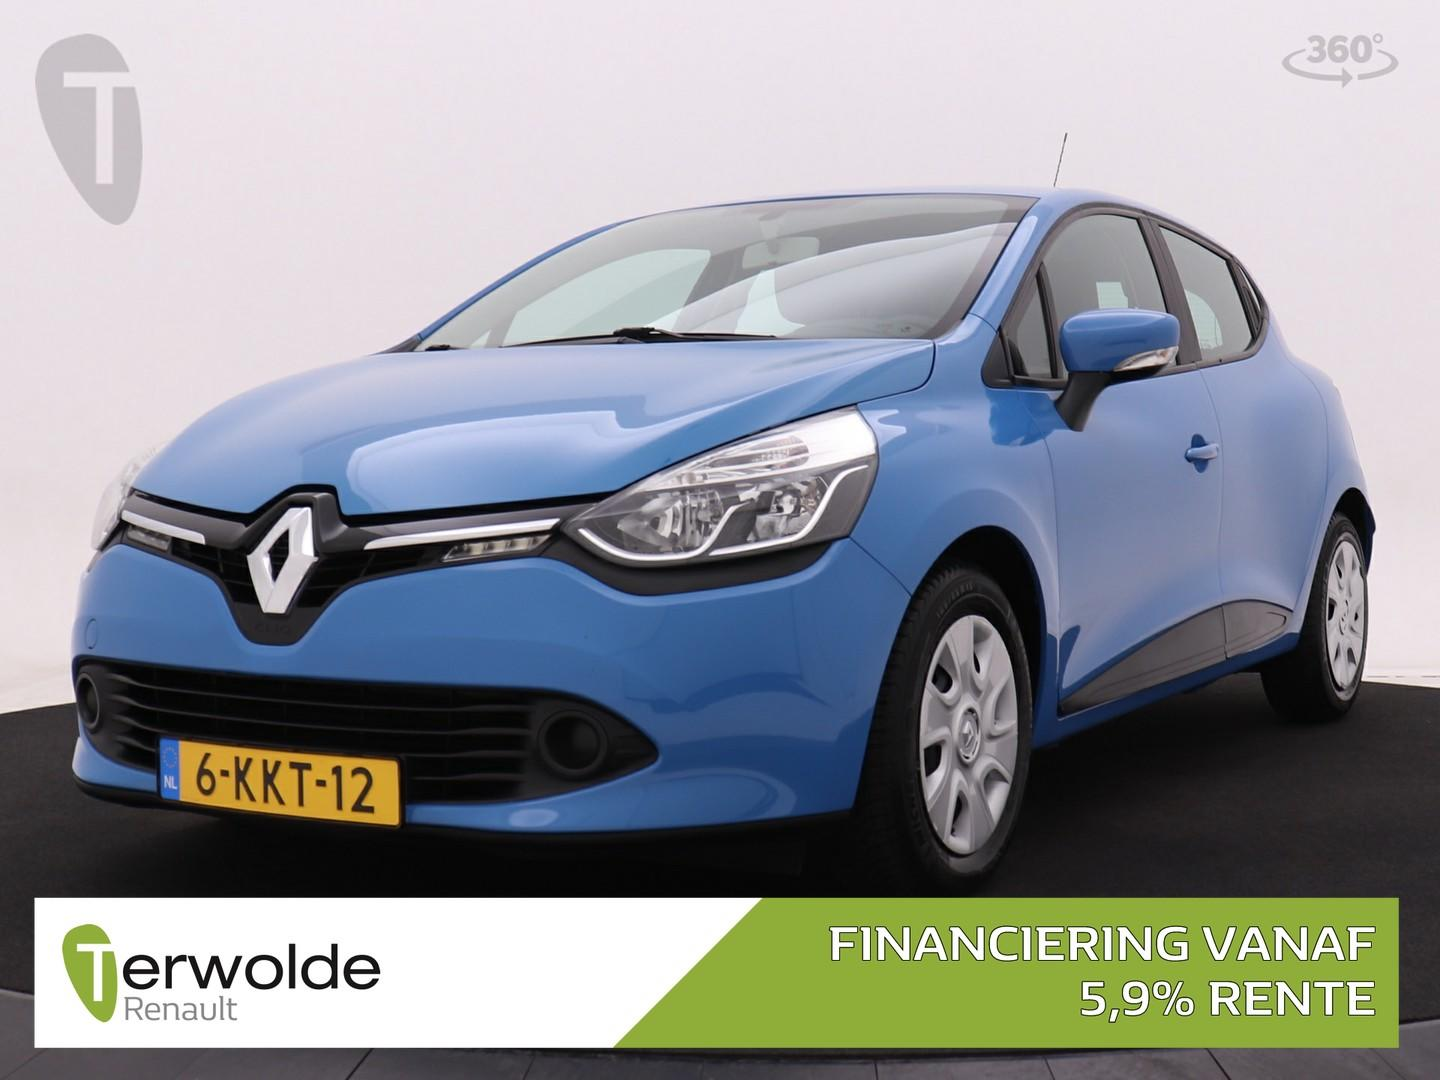 Renault Clio 1.5 dci eco expression airco i cruise control i navigatiesysteem